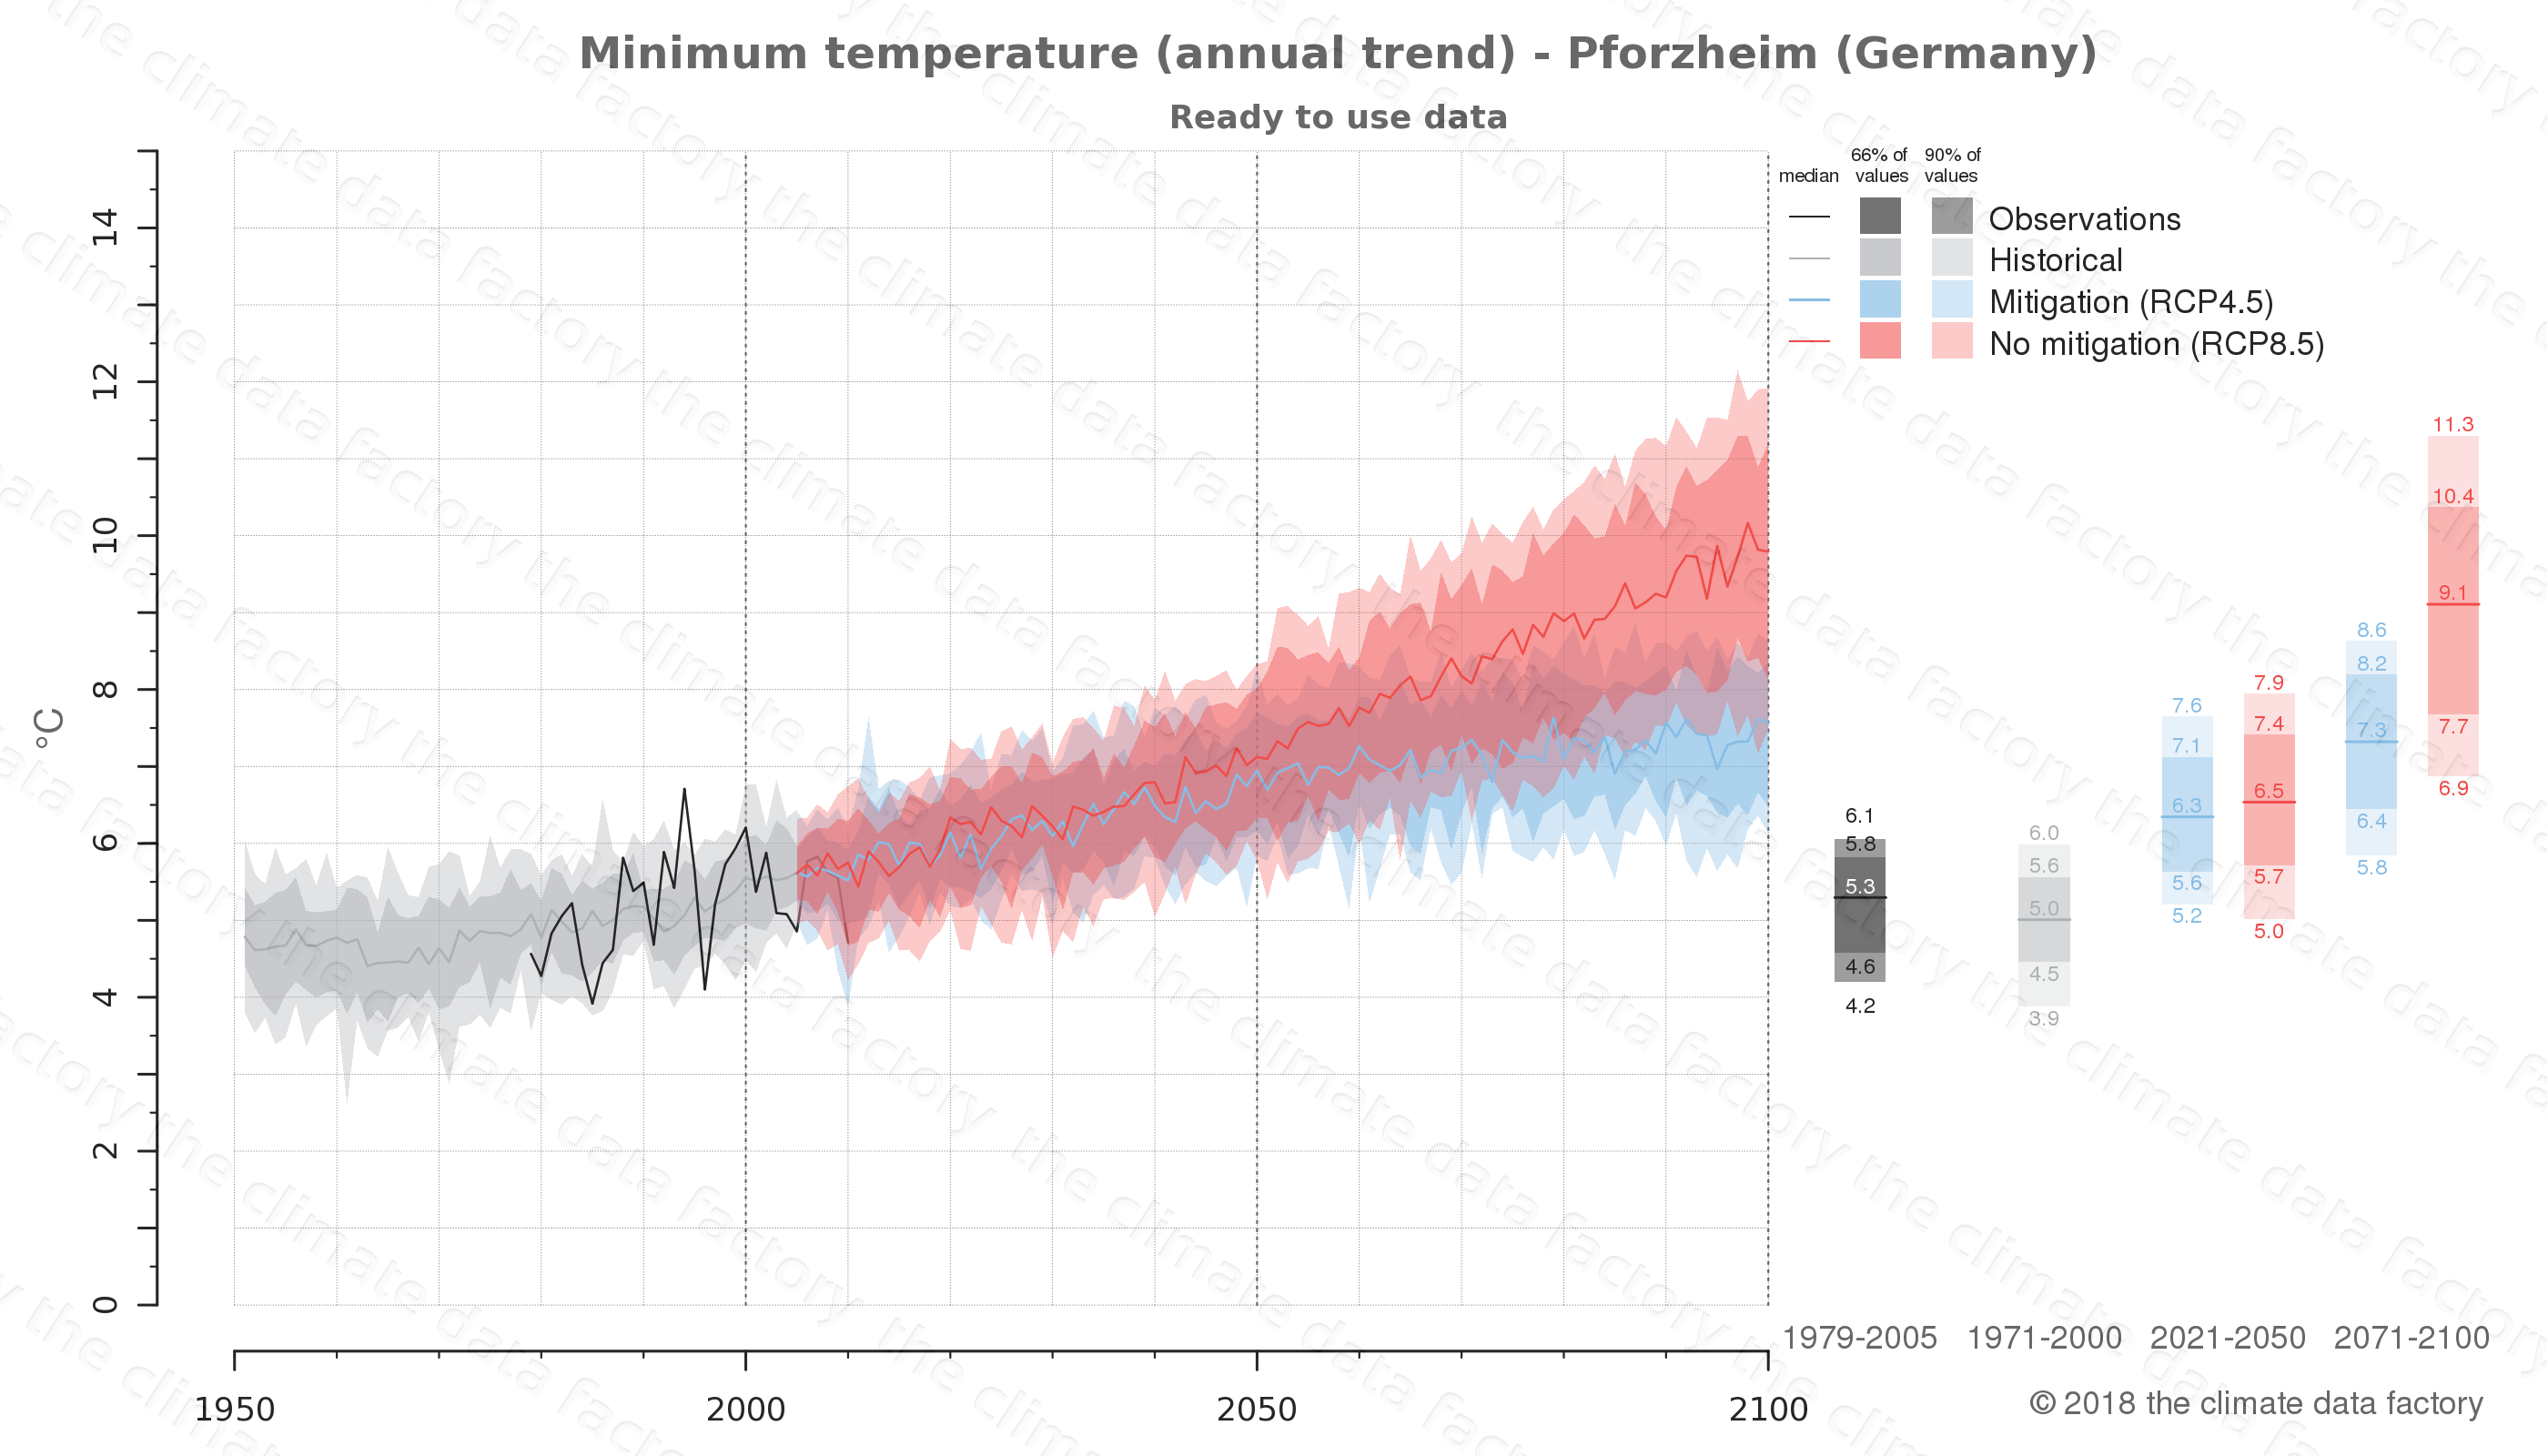 climate change data policy adaptation climate graph city data minimum-temperature pforzheim germany